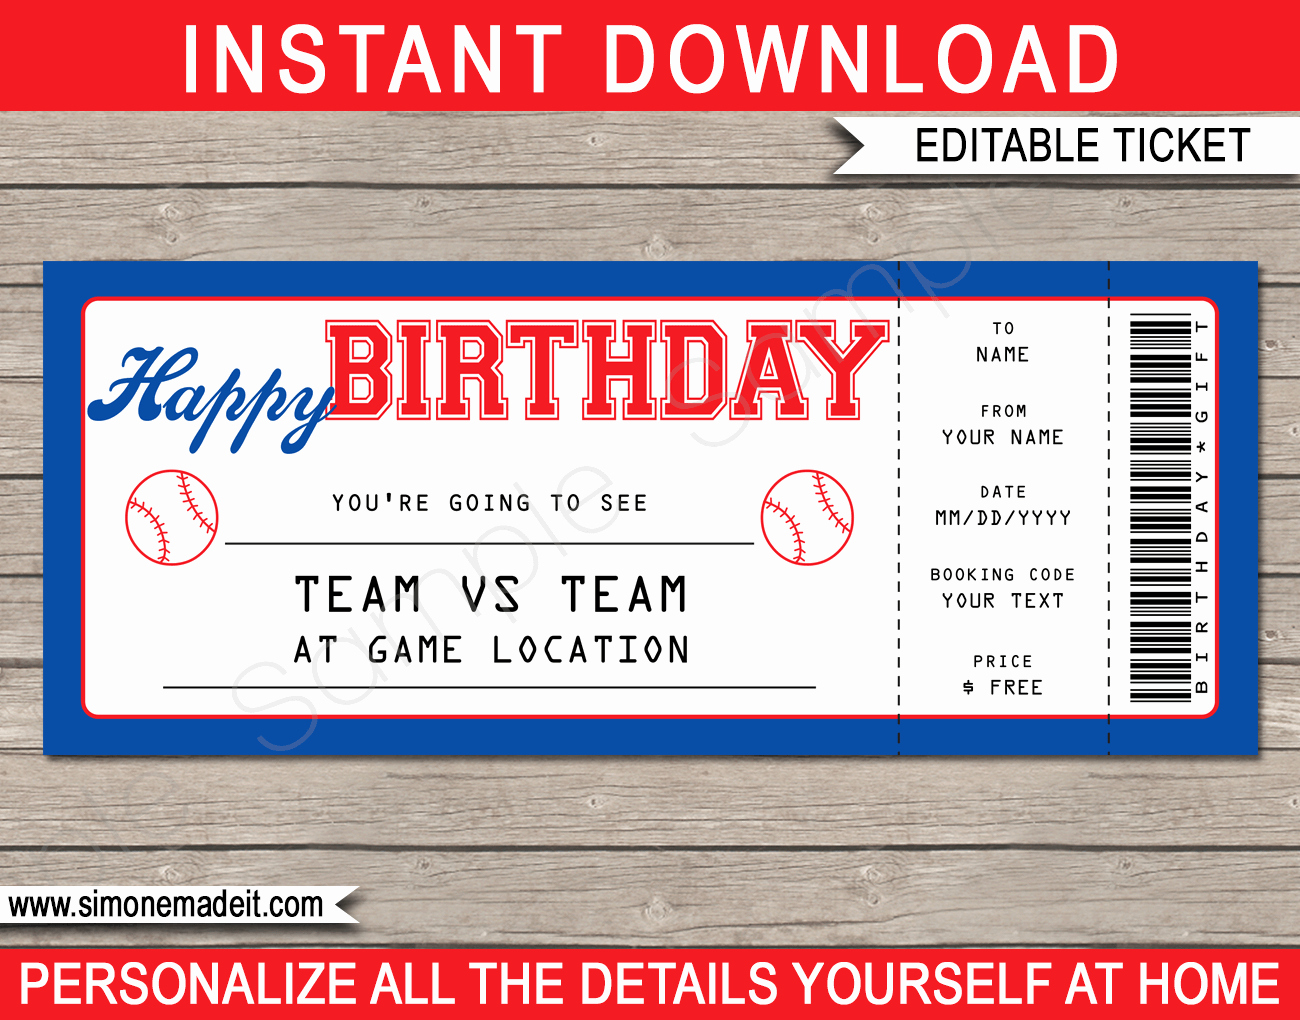 Ticket Template Free Printable Fresh Baseball Game Birthday Gift Ticket